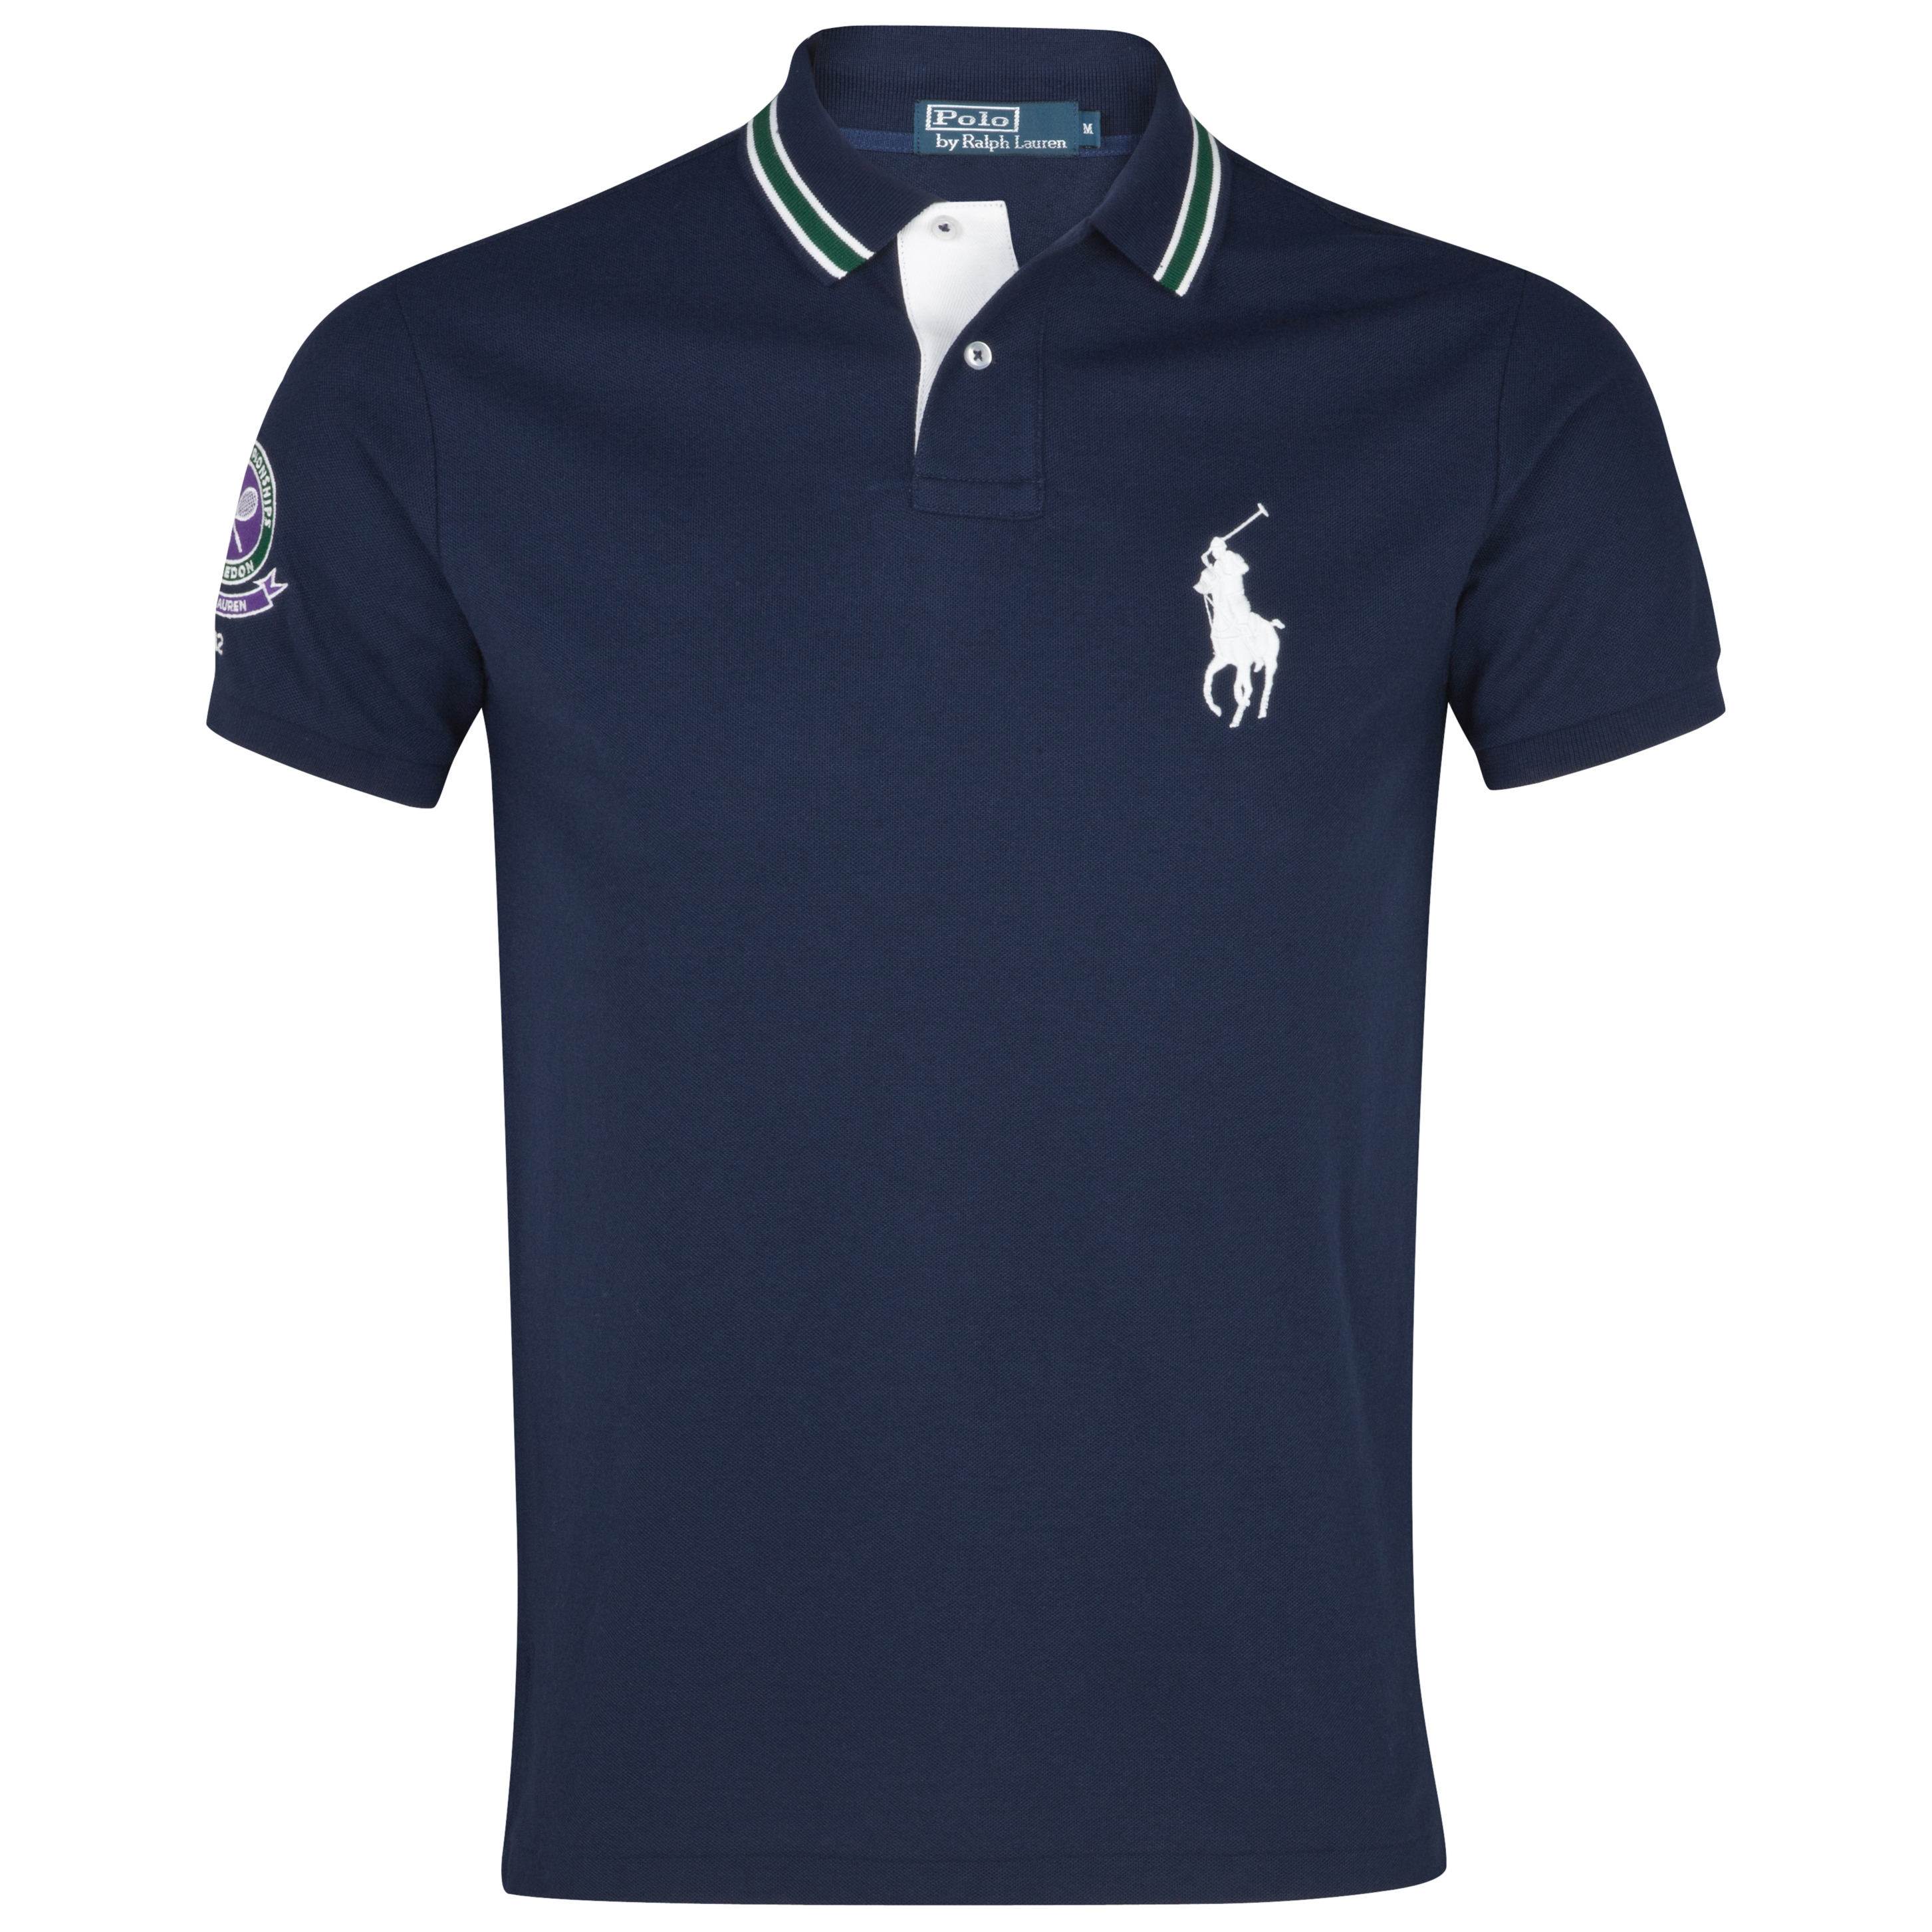 Polo Ralph Lauren Polo Ball Boy Cotton Pique Polo - French Navy - Infant Girls